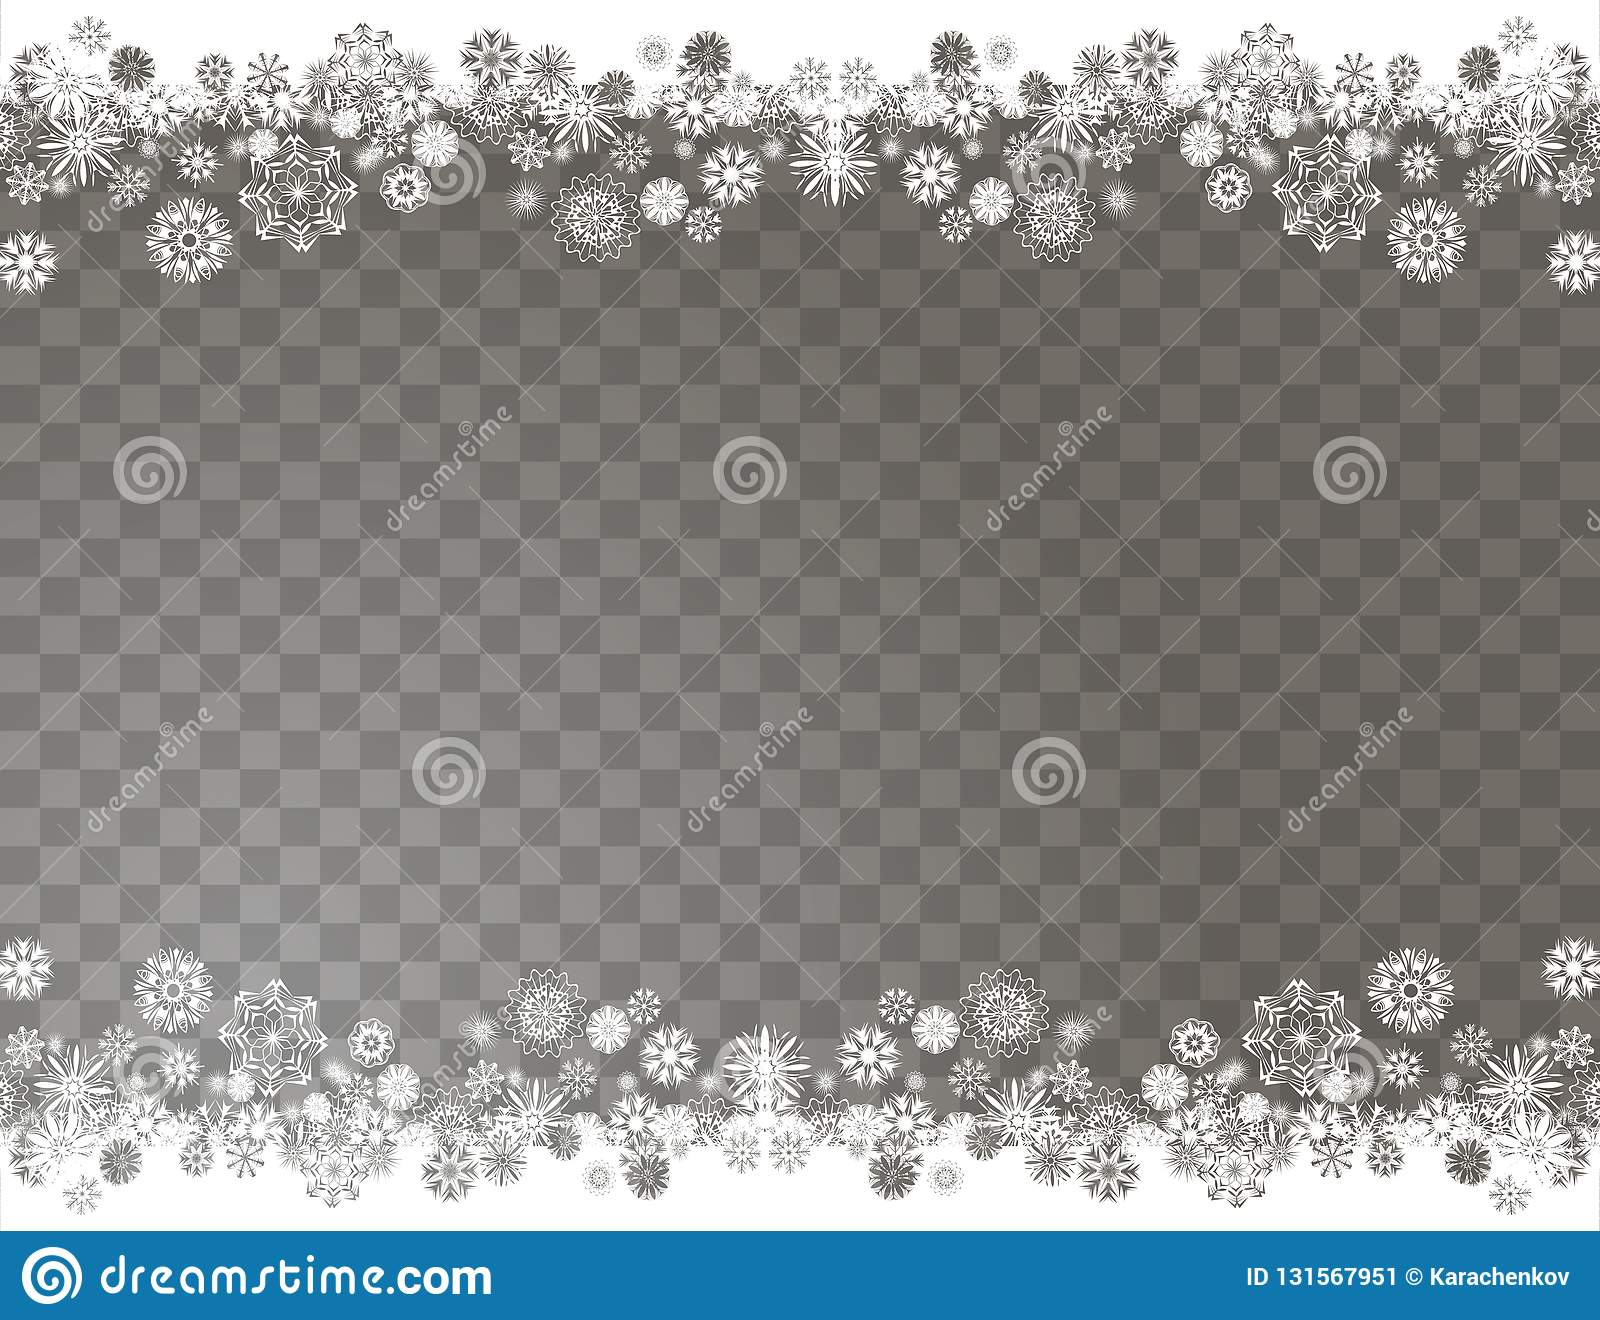 Elegant snow border on a transparent background. Abstract snowflakes background for your Merry Christmas and Happy New Year design